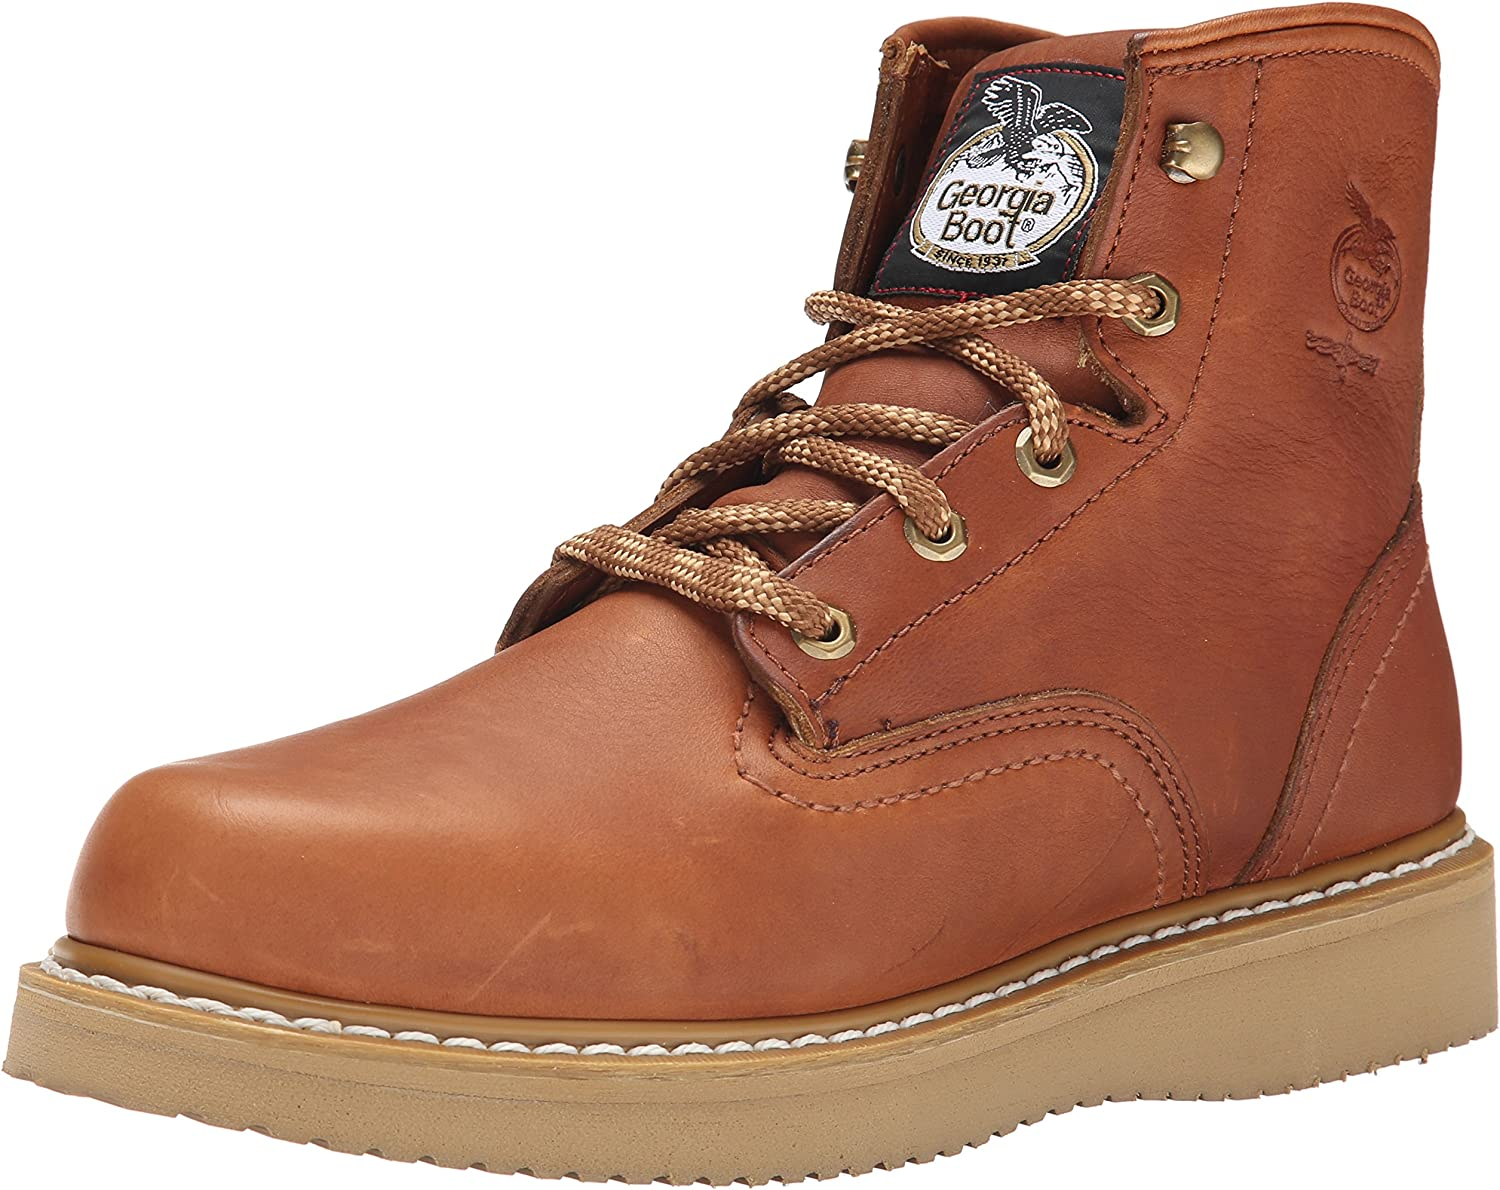 Limited price sale Georgia Boot Men's Mail order cheap Mid G6152 Calf